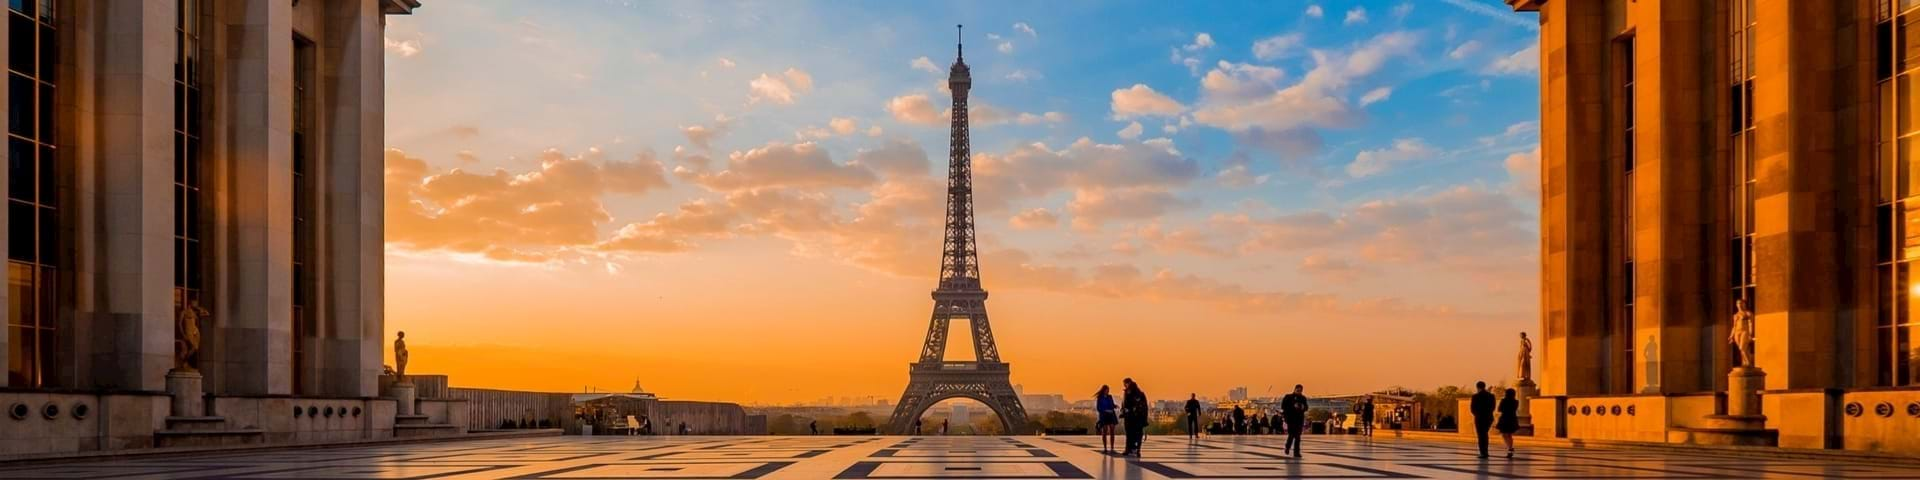 Eiffel Tower Tours